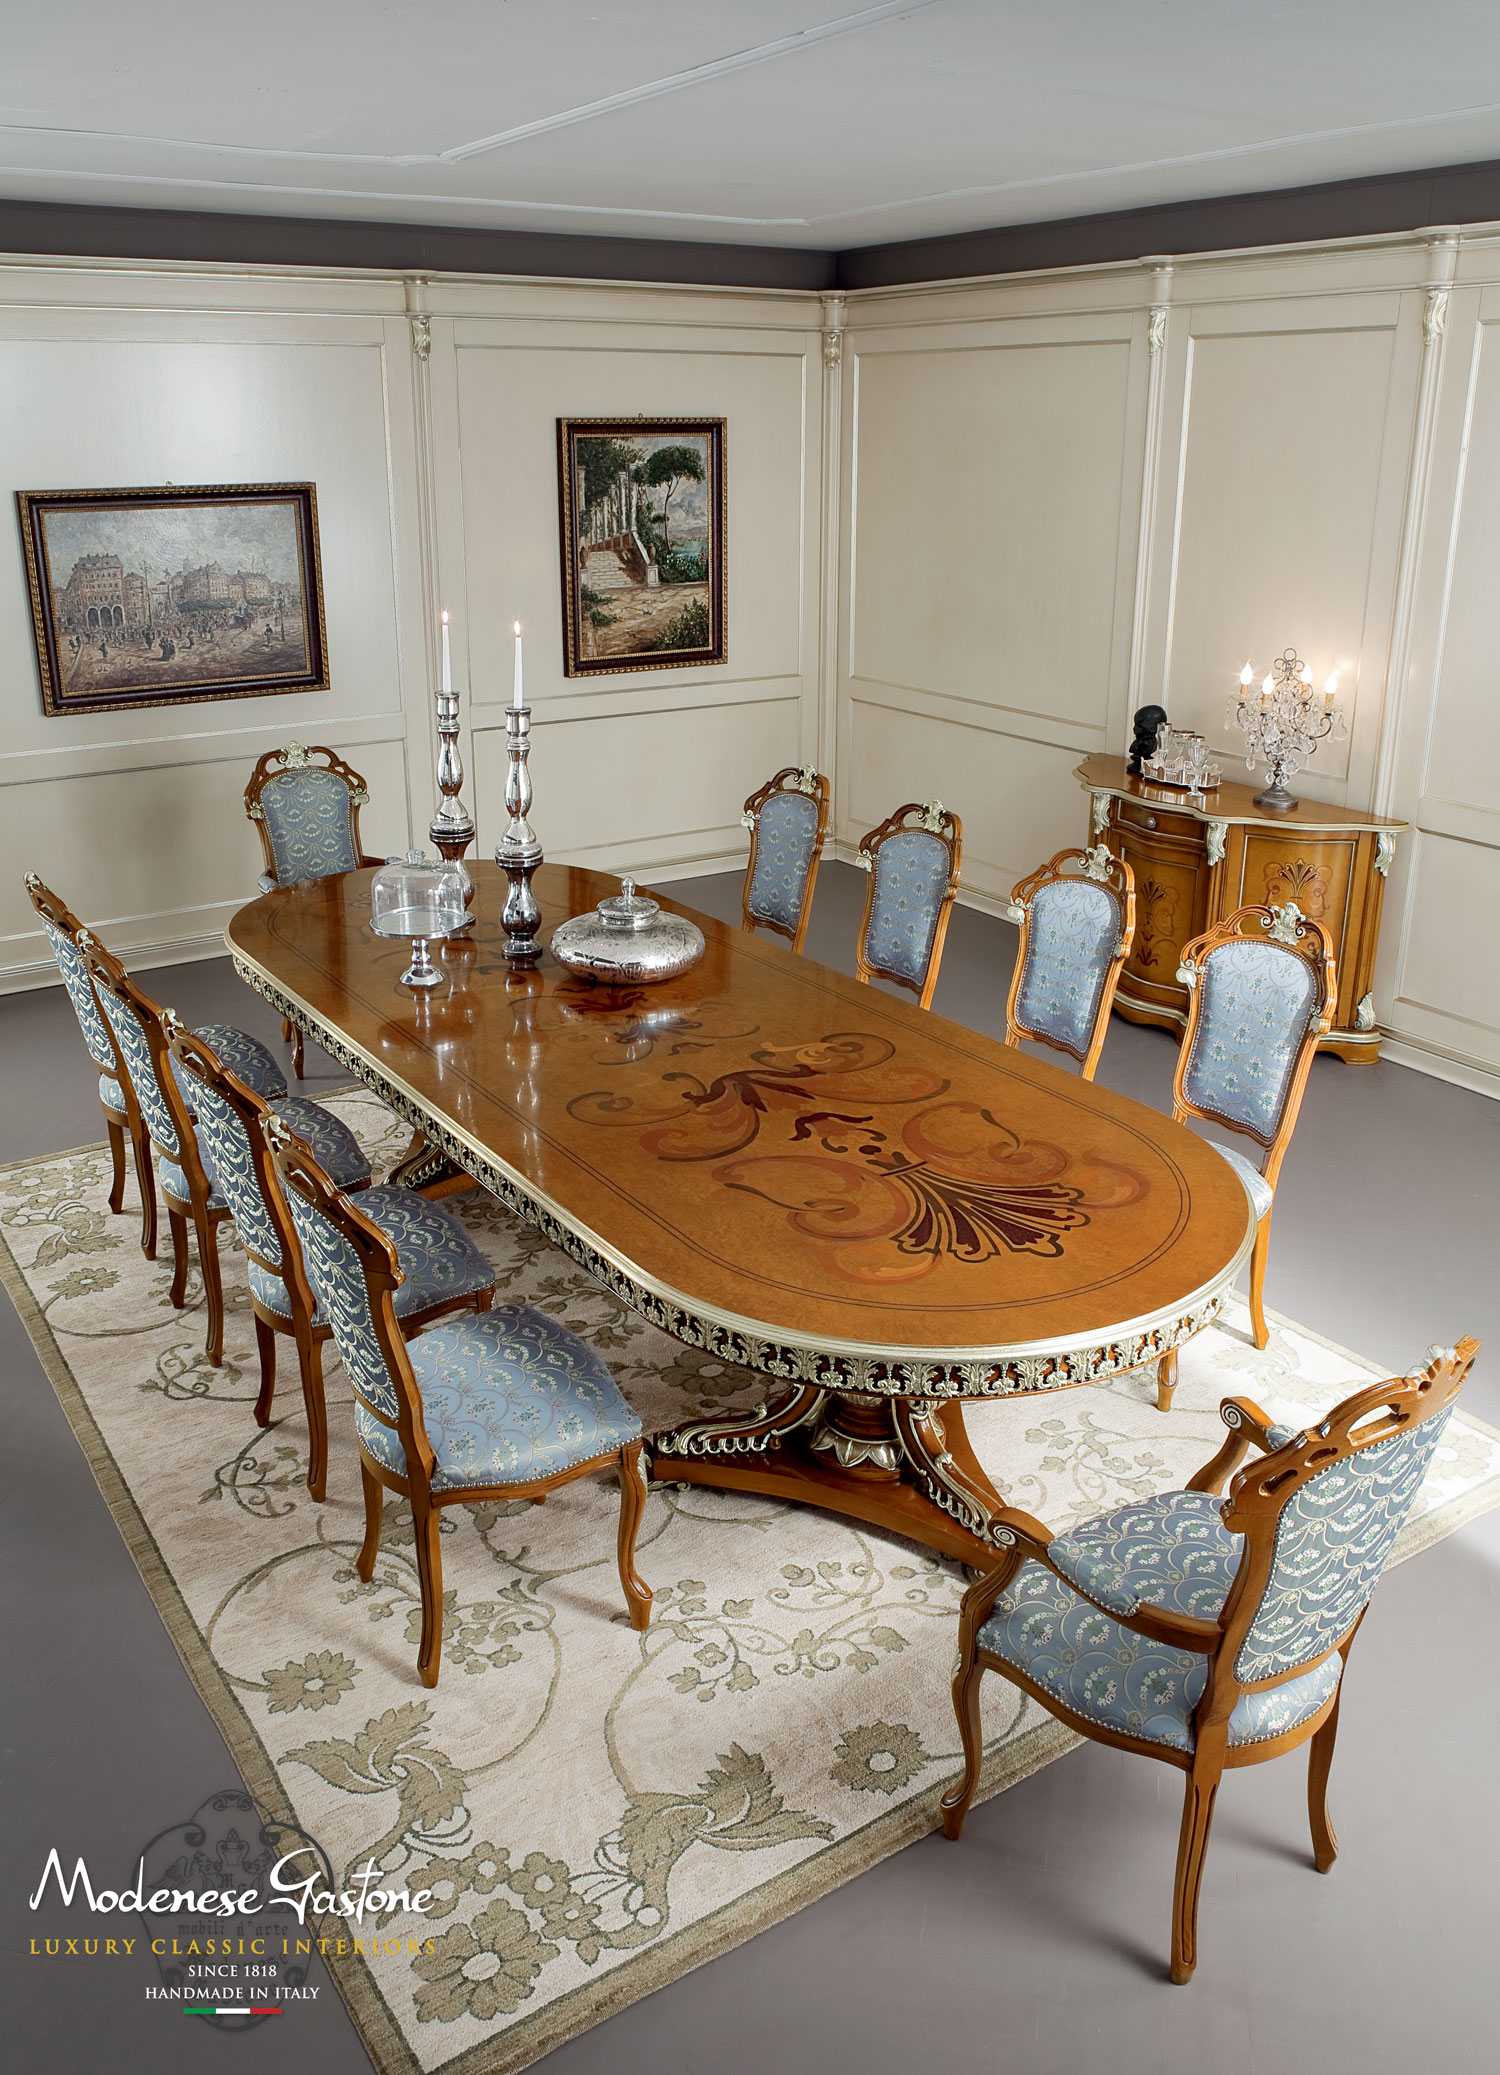 Classic-handmade-hardwood-furniture-for-dining-room-Bella-Vita-collection-Modenese-Gastone